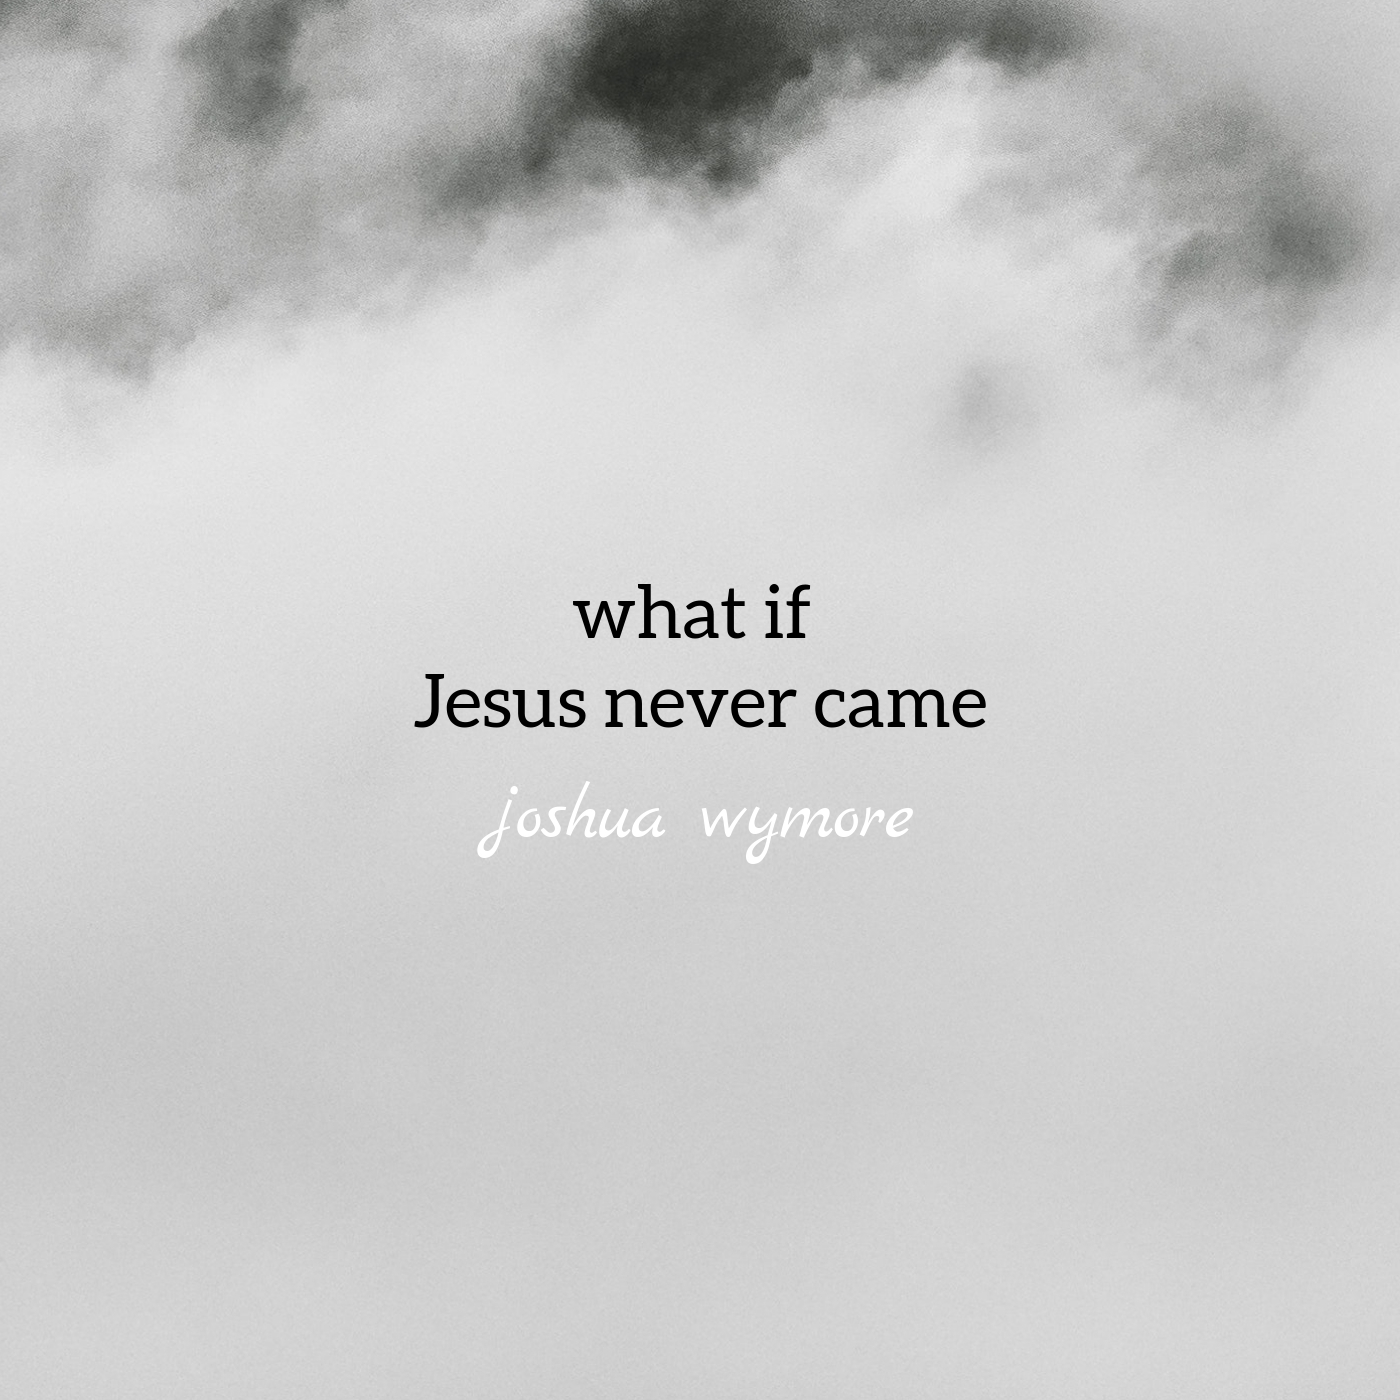 What if Jesus Never Came - In 2012, I found myself (around Christmas time) contemplating what it would be like if God never sent Jesus. Then one day, words began forming in my heart around this idea that matched some music I'd written a few years before. It's a song that begins in a very reflective and almost sorrowful way, but concludes in a contrastingly celebratory mood. Enjoy and rejoice with me that God chose to come after us and not leave us in our darkness and aloneness.